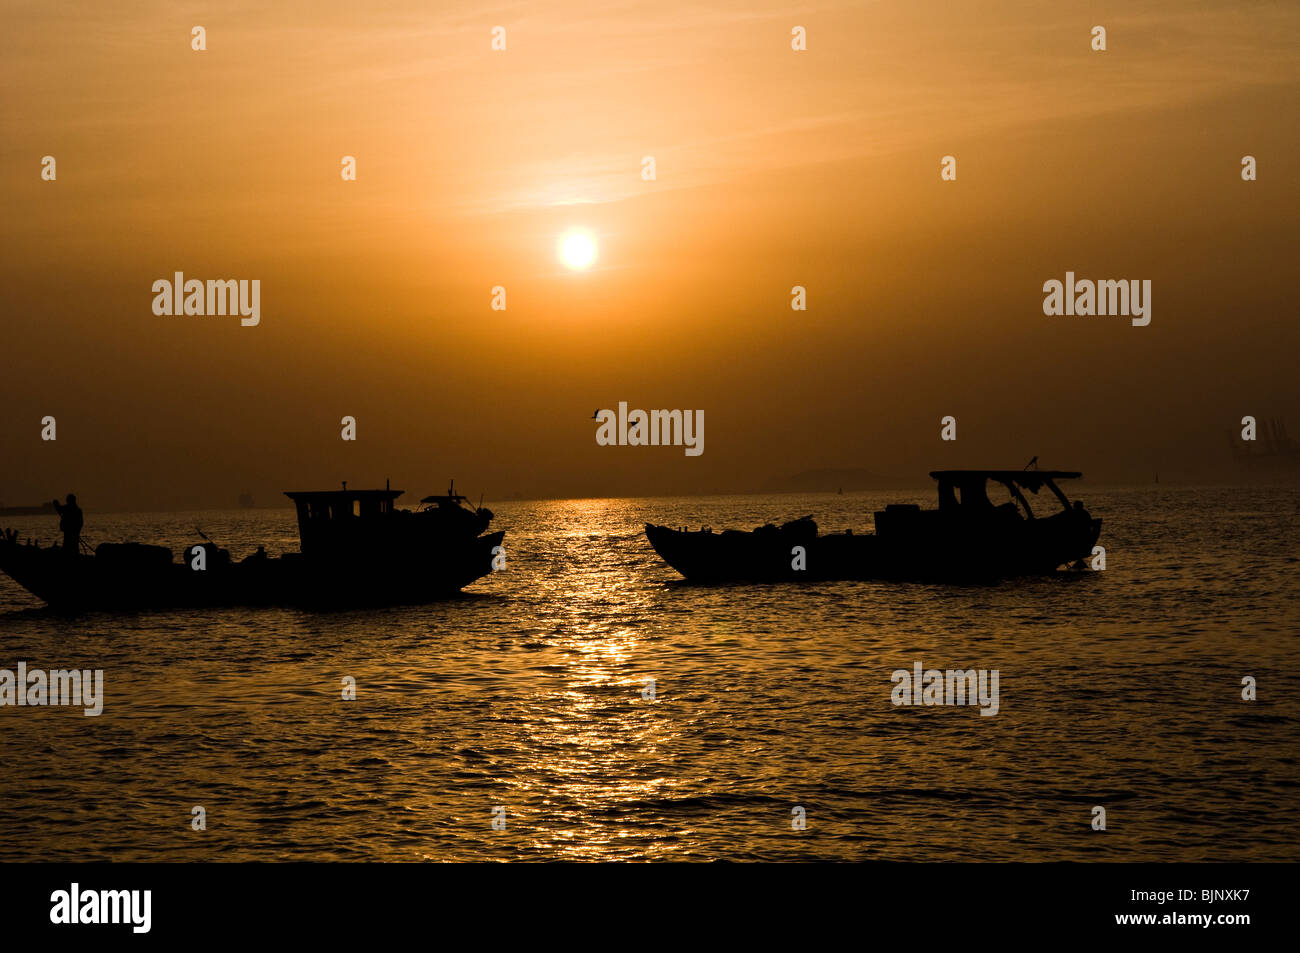 Fishing  boats during sunset in the south China sea. - Stock Image